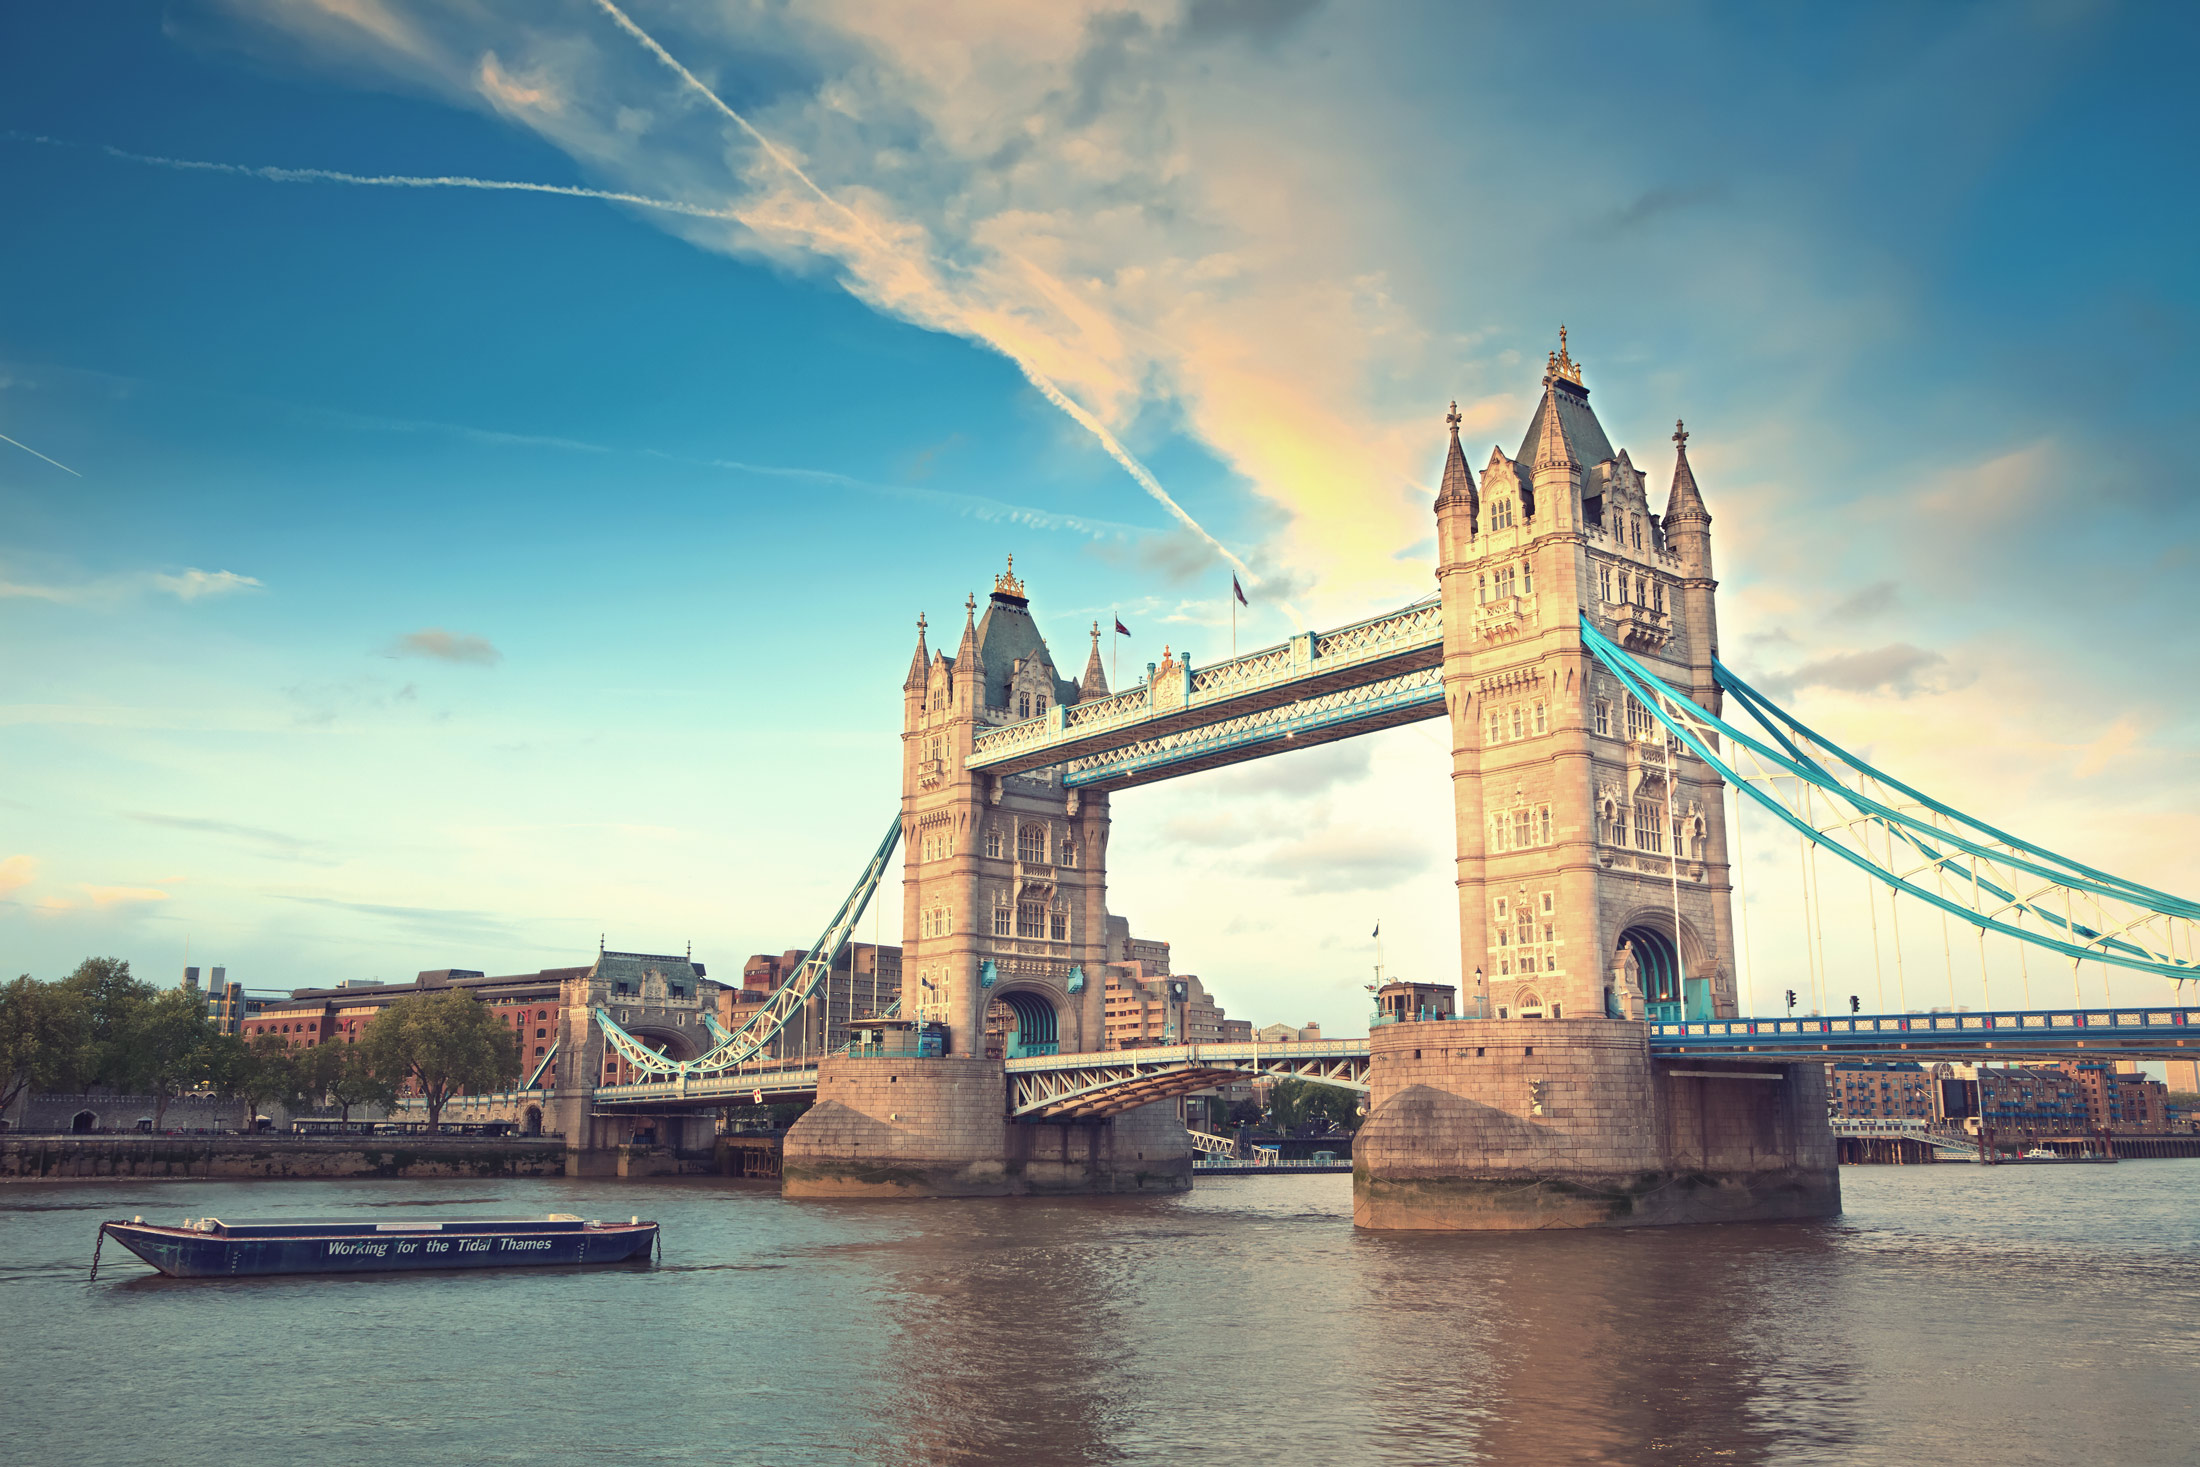 Top 5 London Interesting Facts That Need To Be Highlighted 2 London Interesting Facts Top 5 London Interesting Facts That Need To Be Highlighted Top 5 London Interesting Facts That Need To Be Highlighted 2